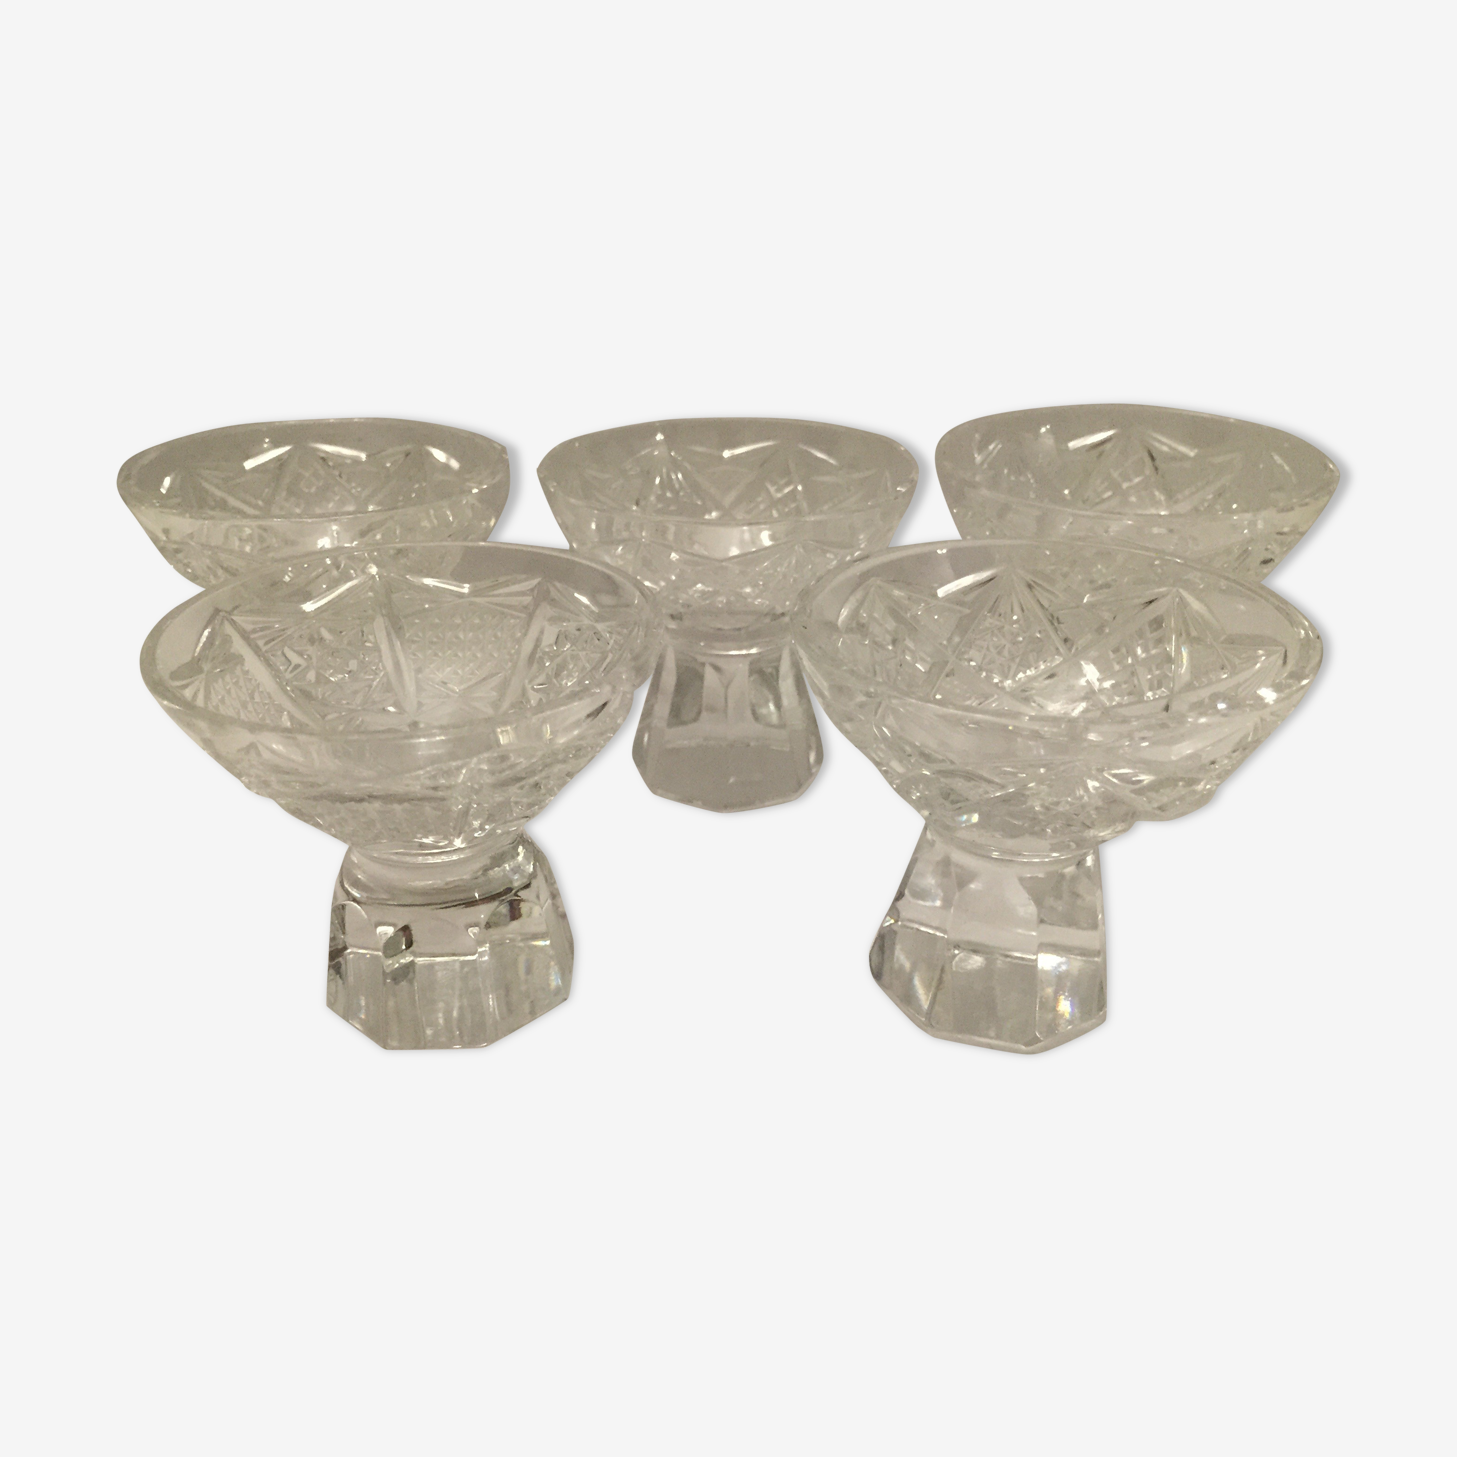 5 alcohol cut crystal glass set